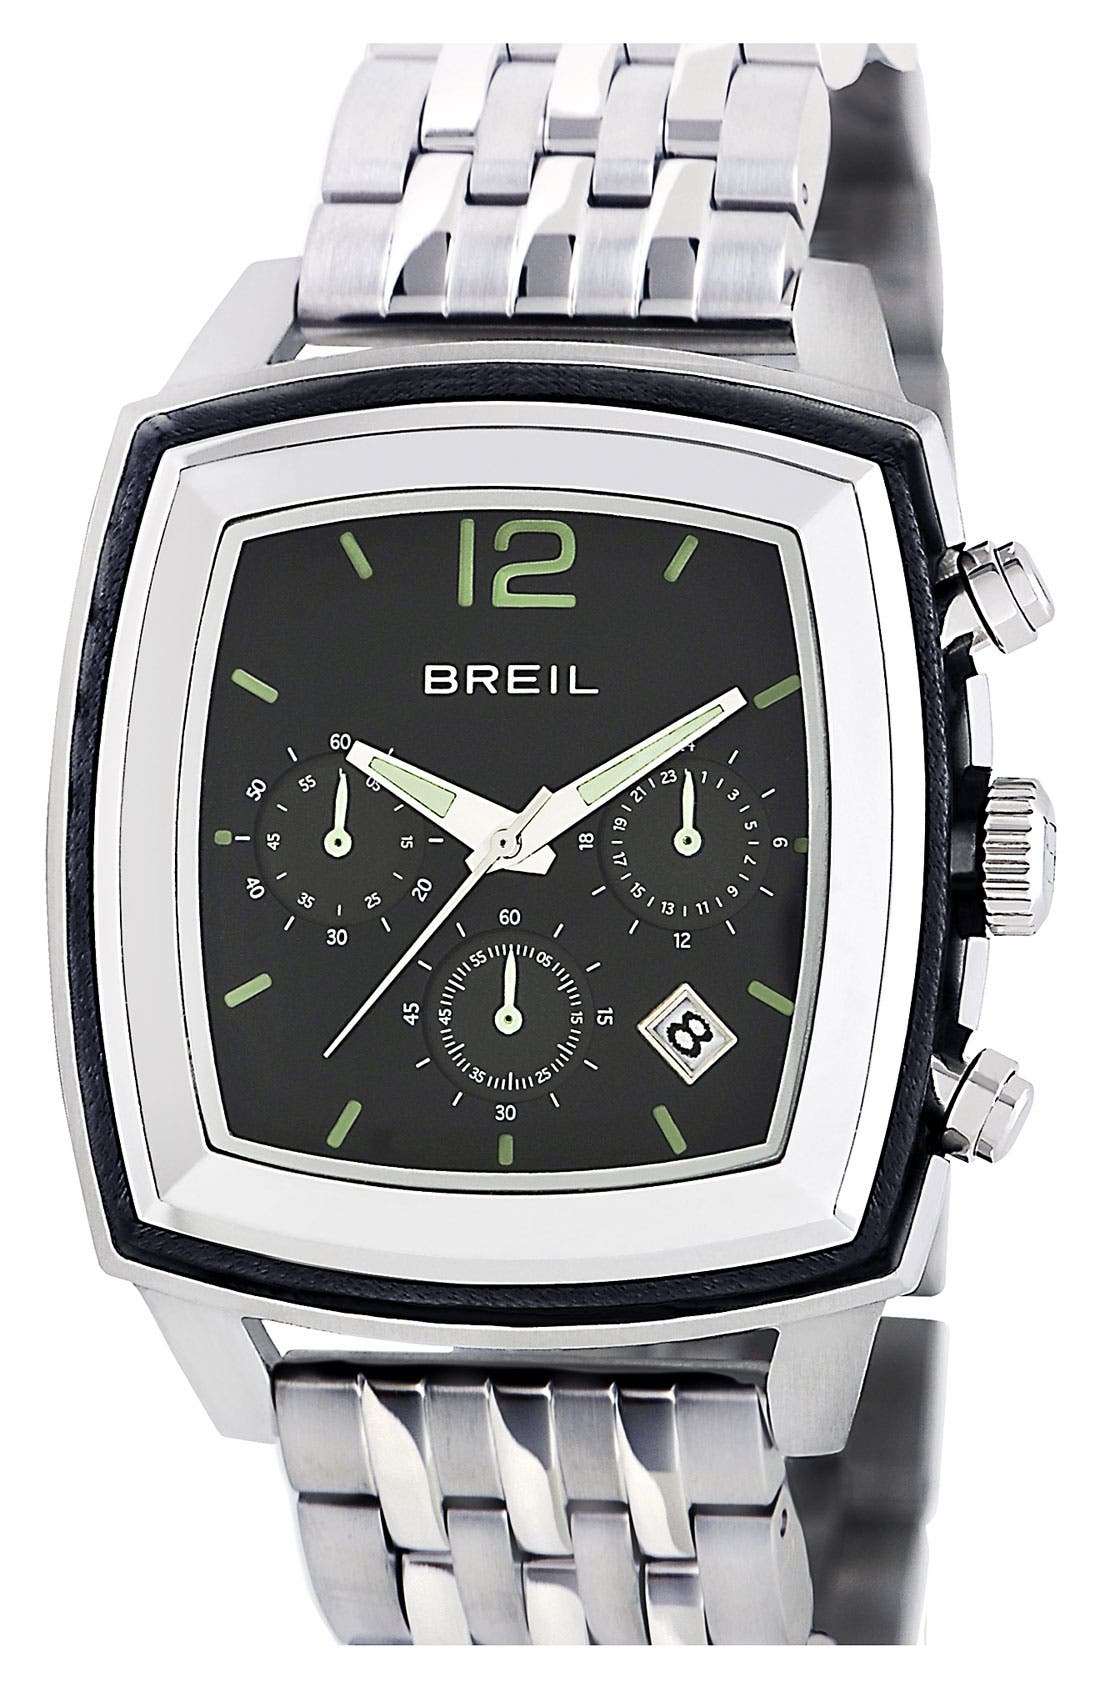 Alternate Image 1 Selected - Breil 'Orchestra' Large Square Chronograph Watch, 42mm x 52mm